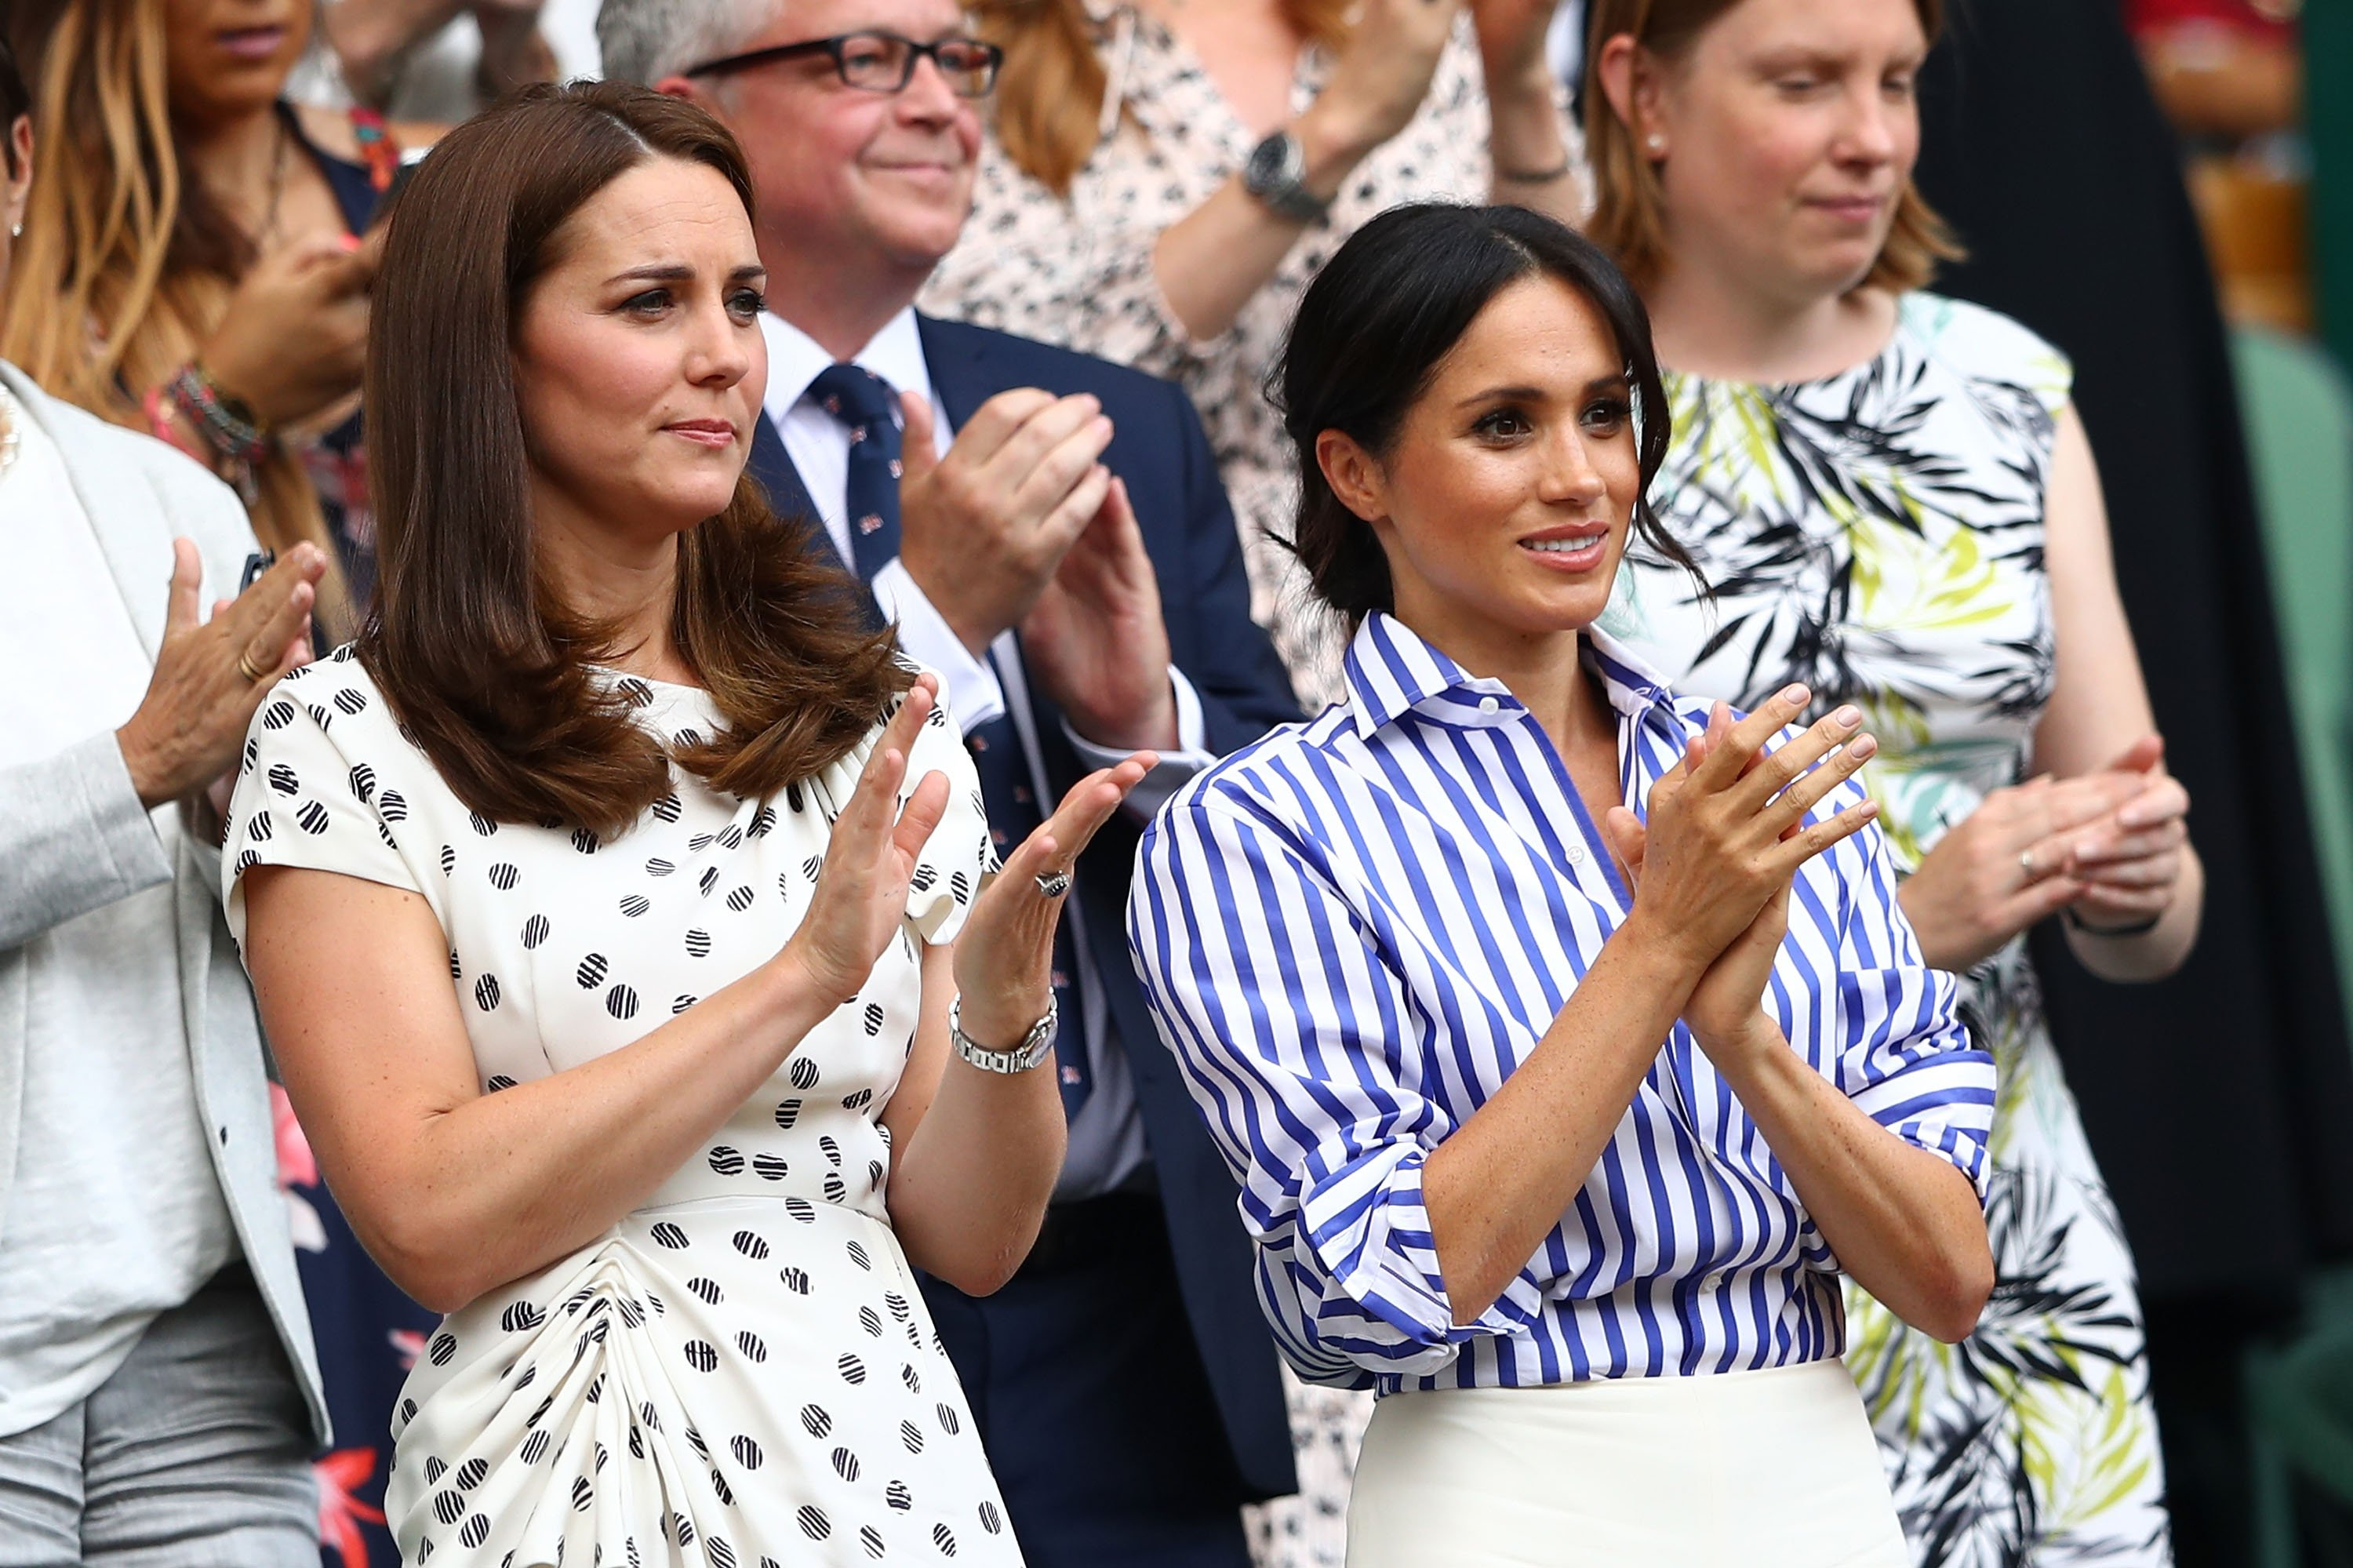 Kate Middleton and Meghan Markle applaud ahead of the Ladies' Singles final match on day twelve of the Wimbledon Lawn Tennis Championships at All England Lawn Tennis and Croquet Club on July 14, 2018   Photo: Getty Images